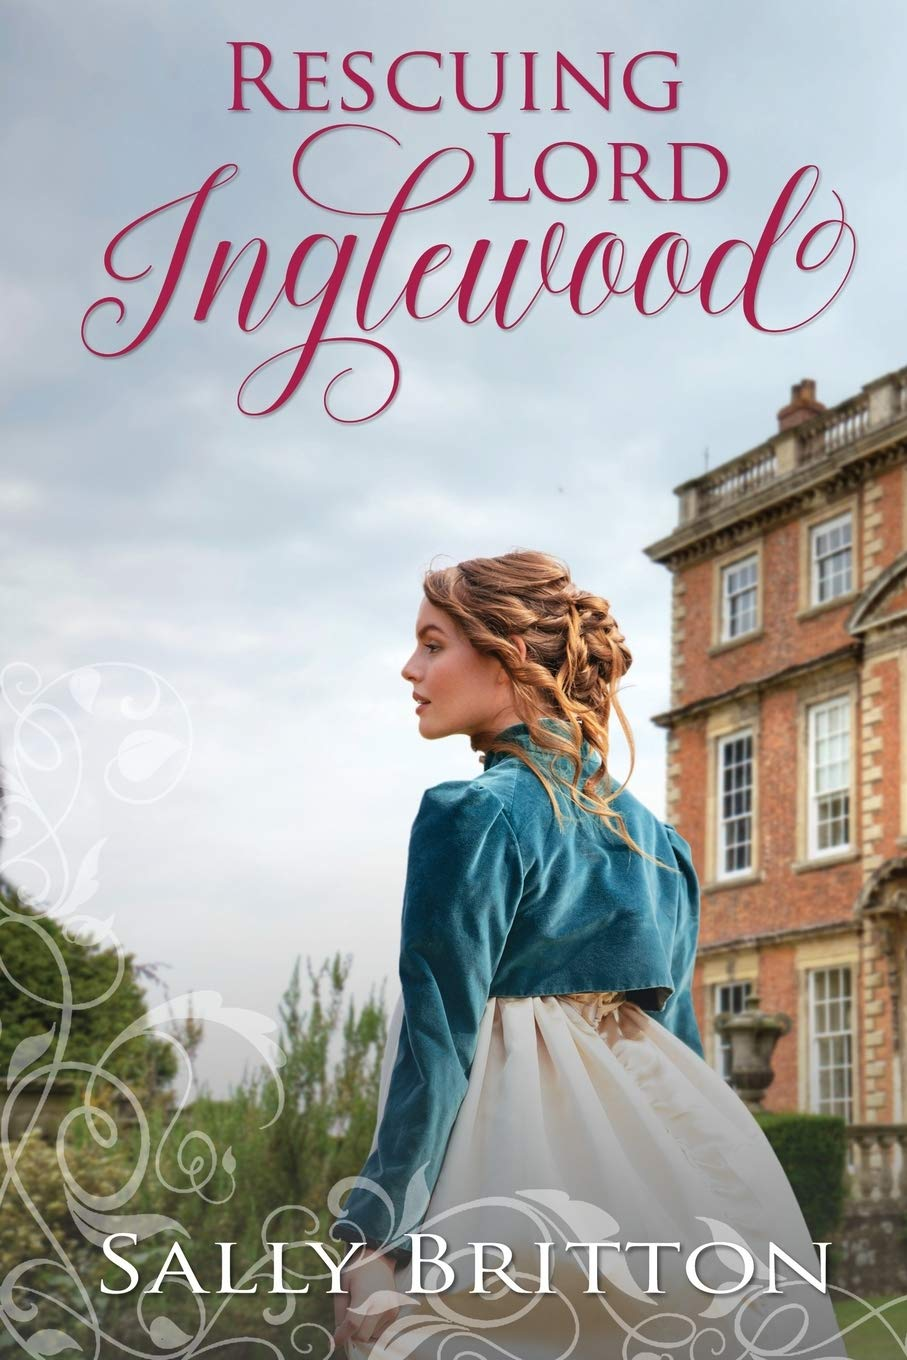 Rescuing Lord Ingelwood, by Sally Britton (2019)